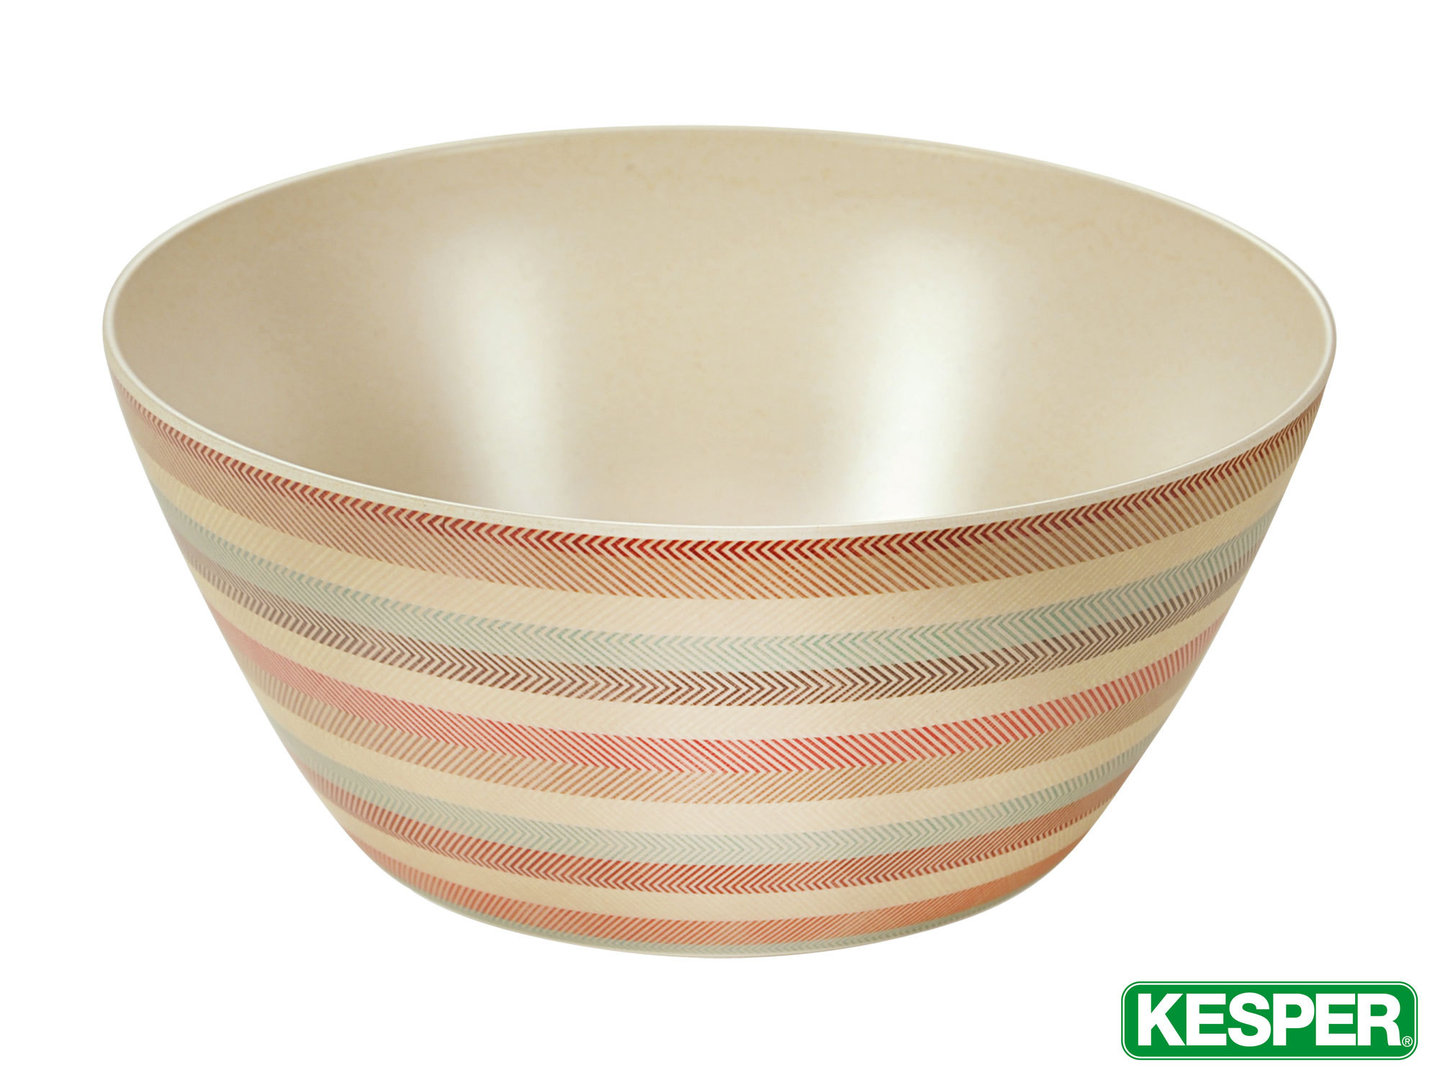 "KESPER fruit and salad bowl 25 cm BAMBOO FIBRE ""stripes"""